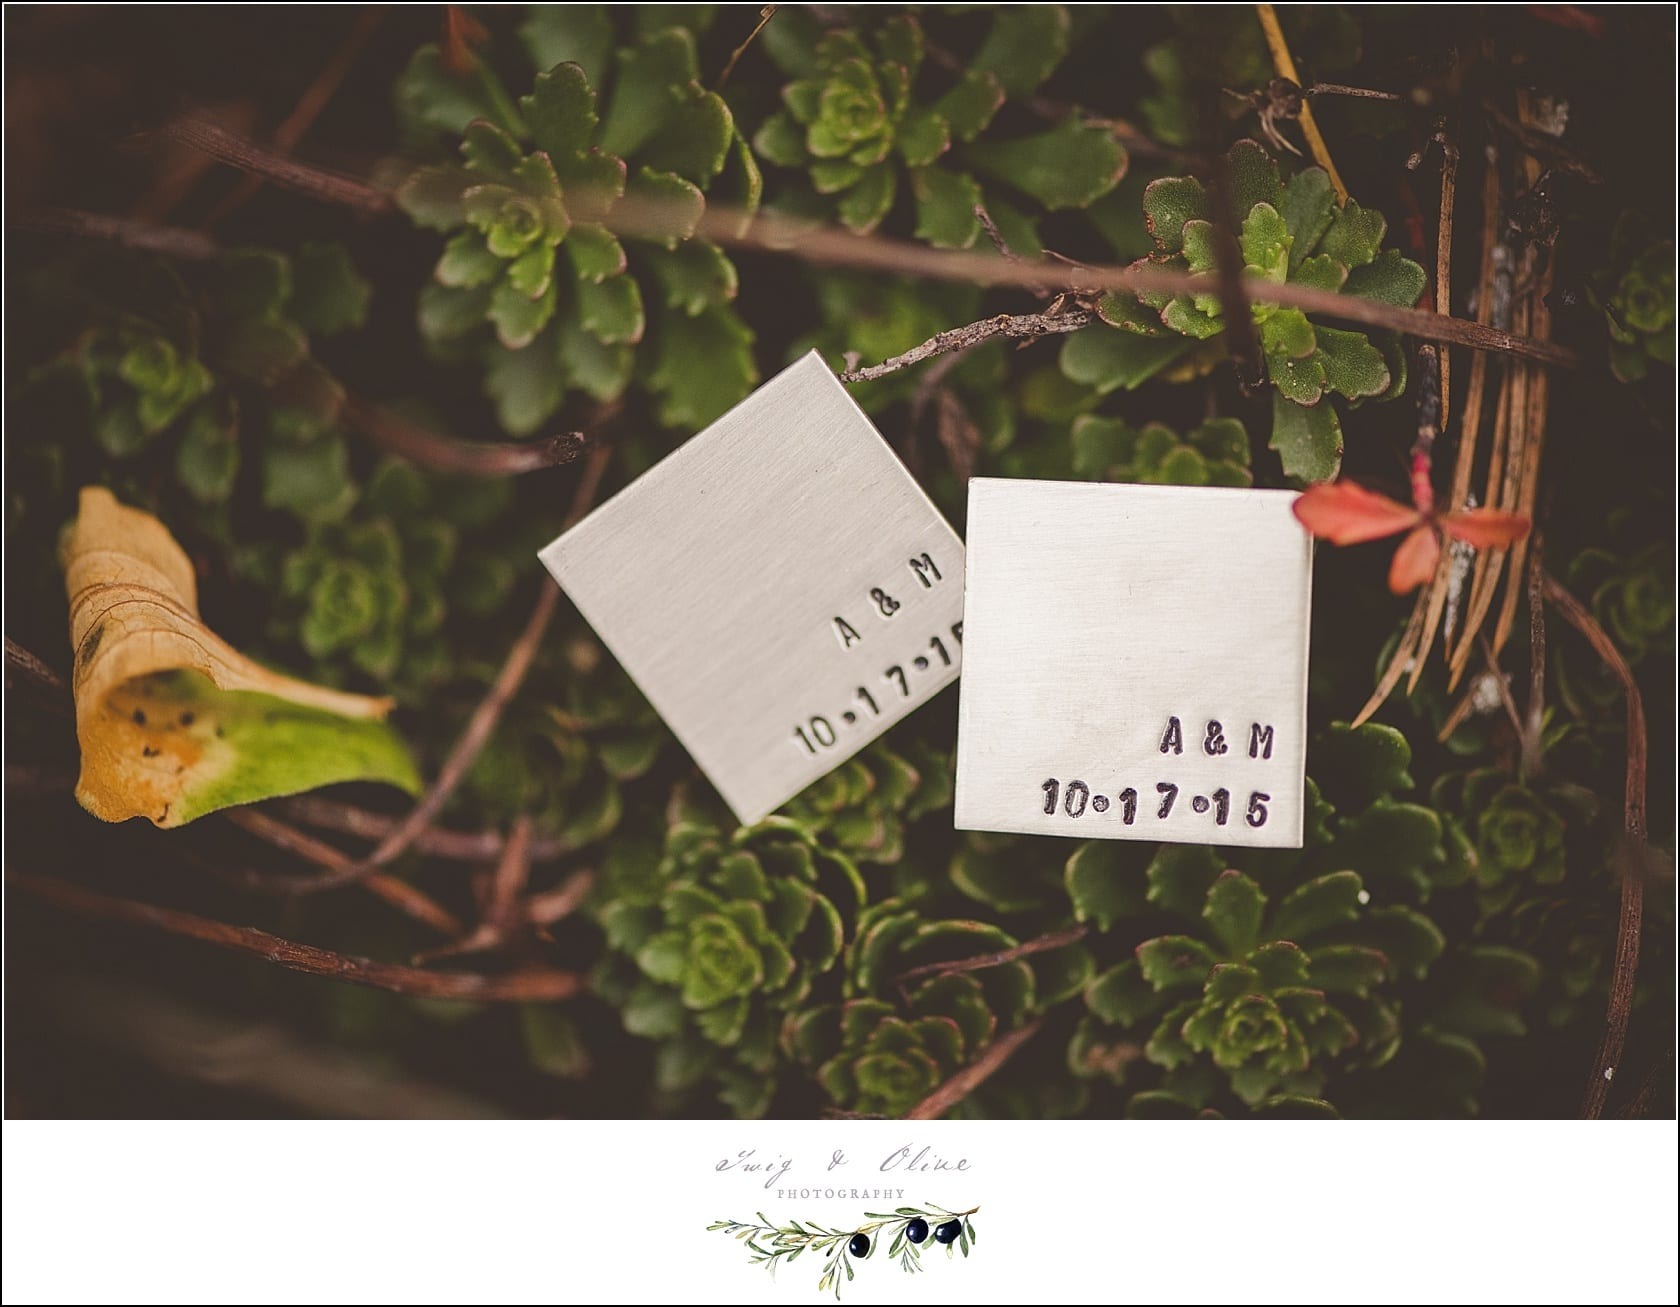 Twig & Olive PhotographyWeddings Archives < Page 46 of 59 < Twig ...